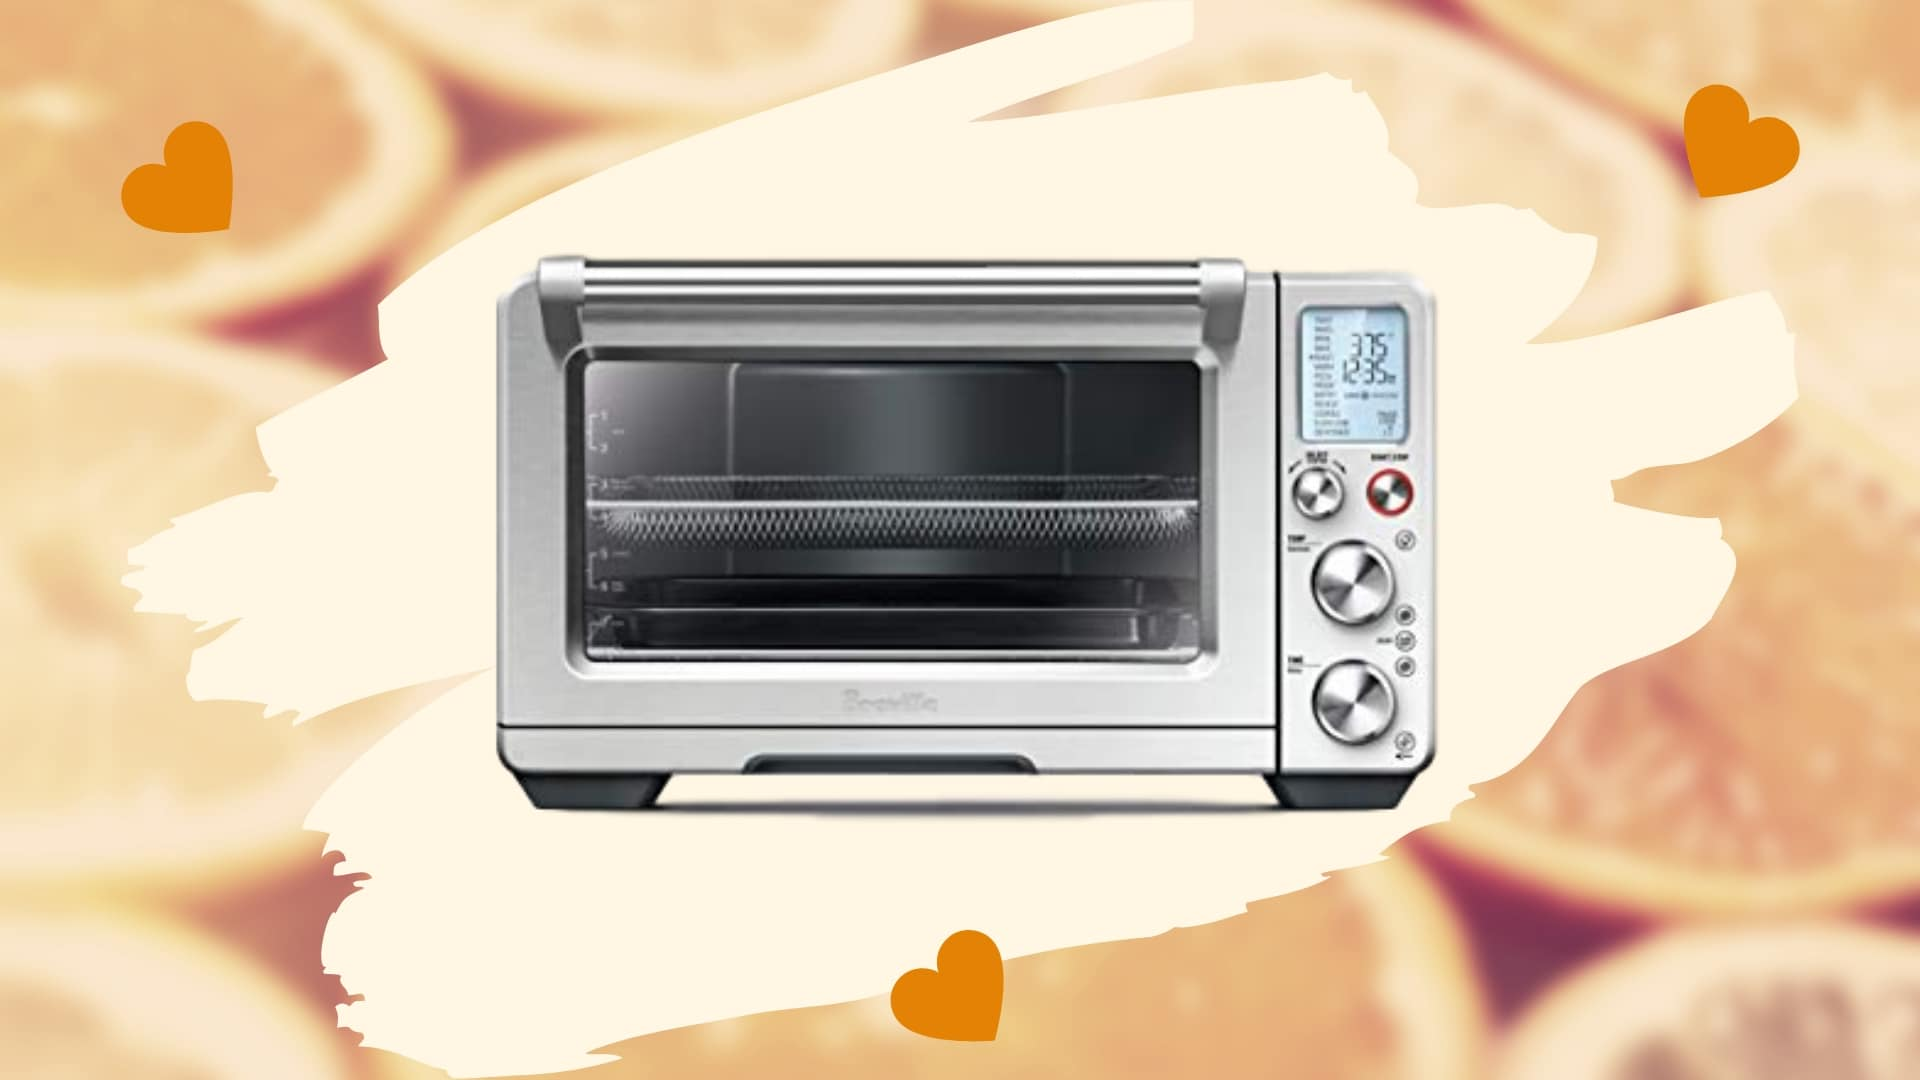 Breville Smart Oven Air Toaster Oven featured image